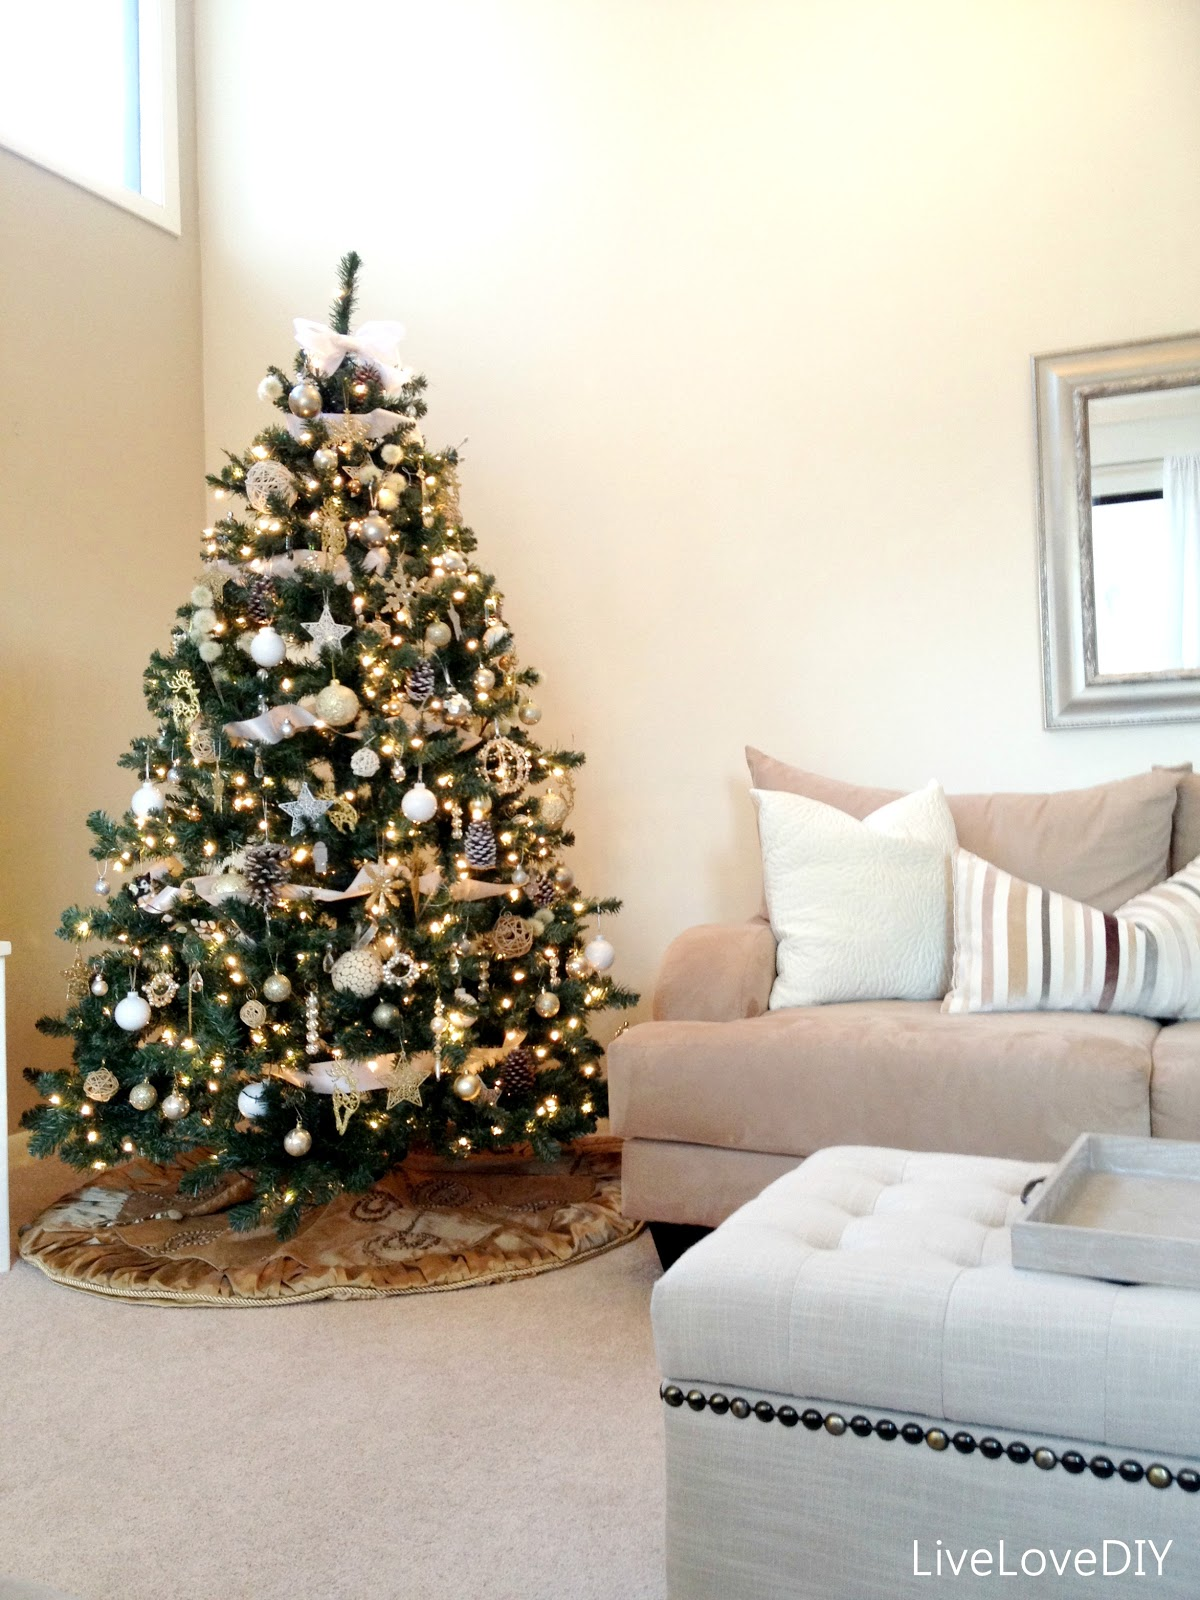 interior-design-ideas-simple-easy-diy-christmas-tree-decoration-with-white-ornament-beautiful-christmas-tree-pictures-decoration-ideas